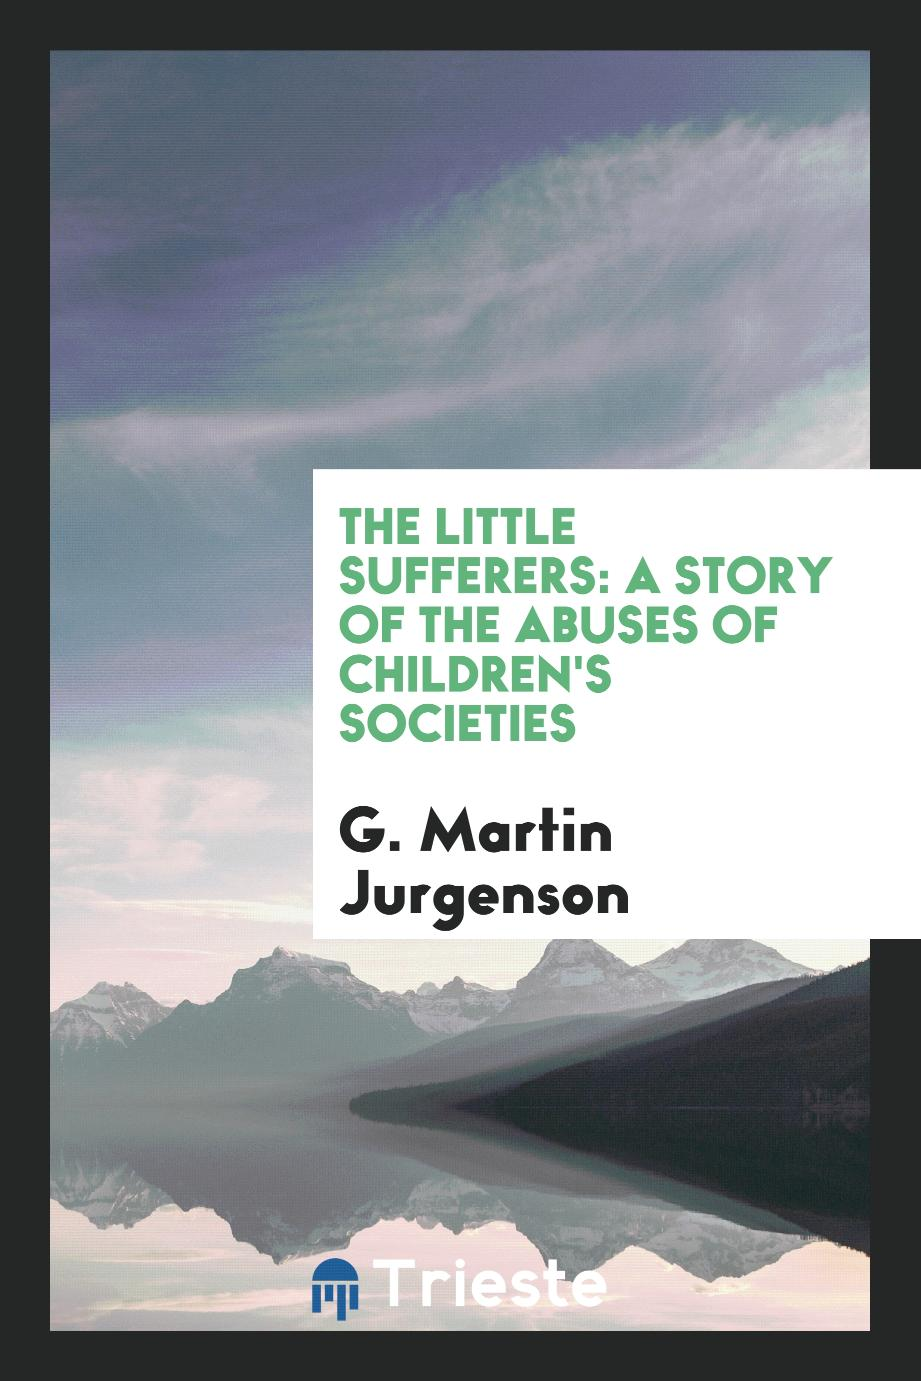 The Little Sufferers: A Story of The Abuses of Children's Societies